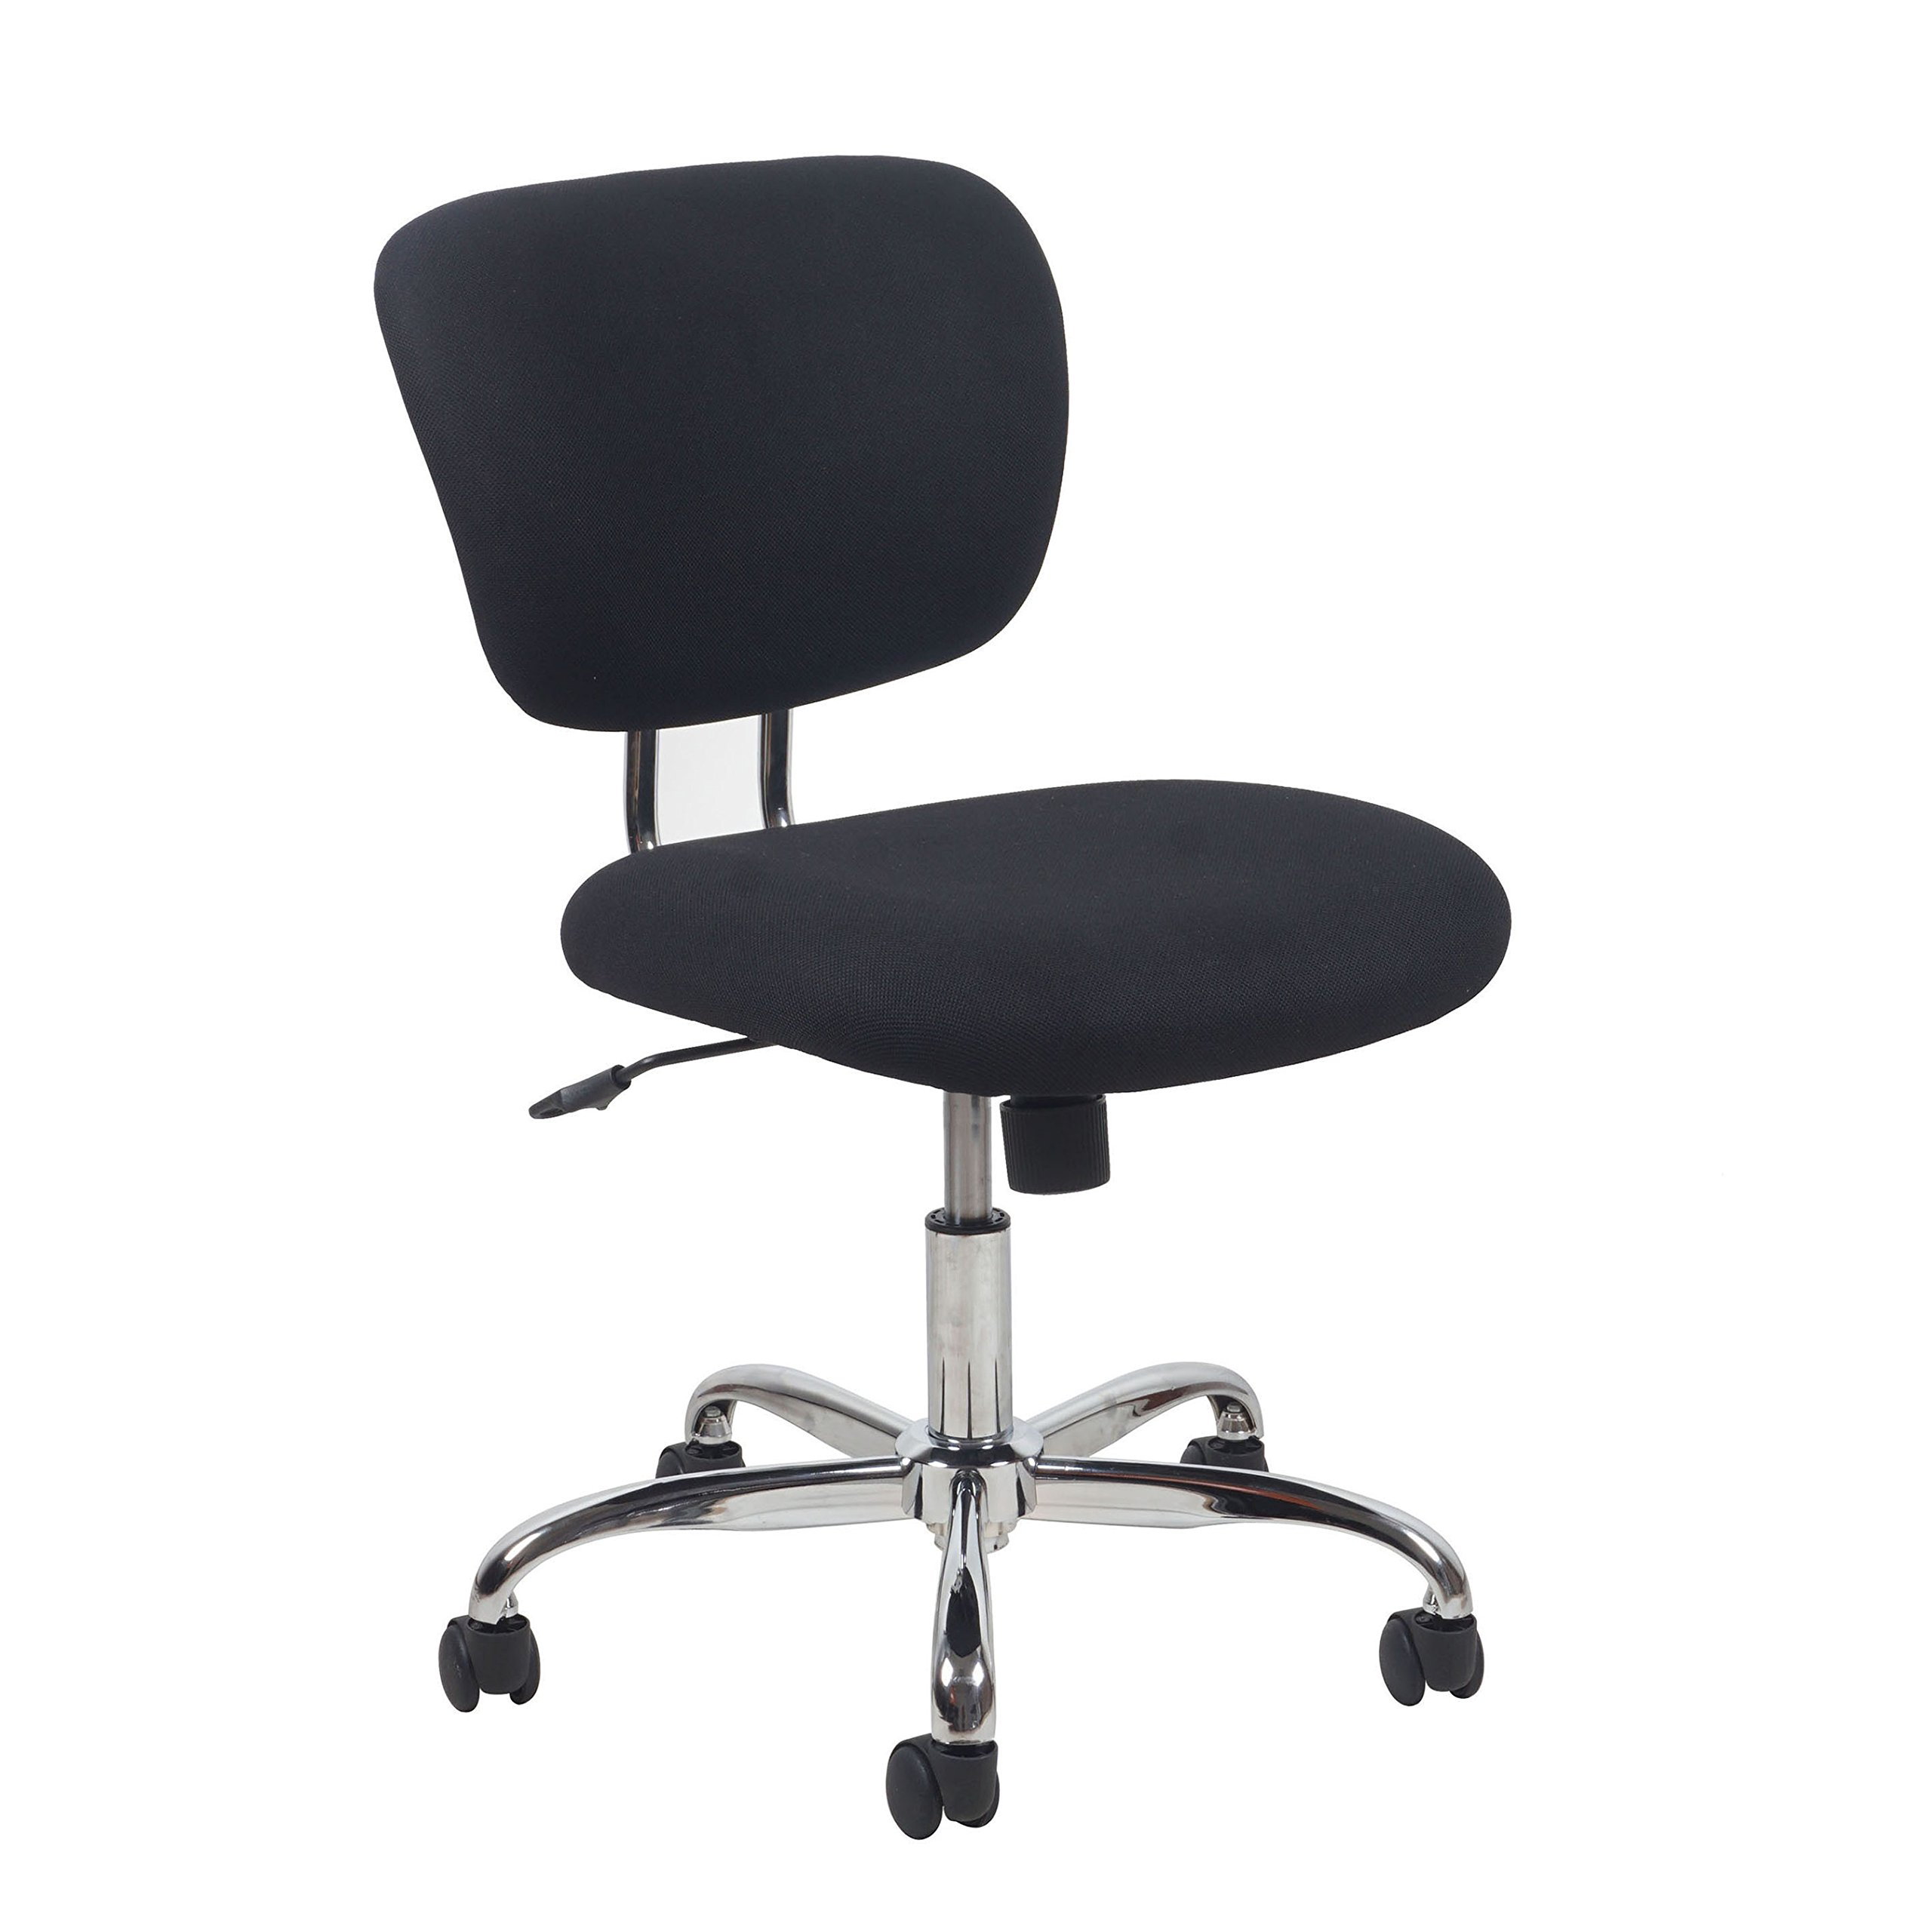 Essentials ESS-3090 Swivel Upholstered Armless Task Chair - Ergonomic Computer/Office Chair, Black/Chrome